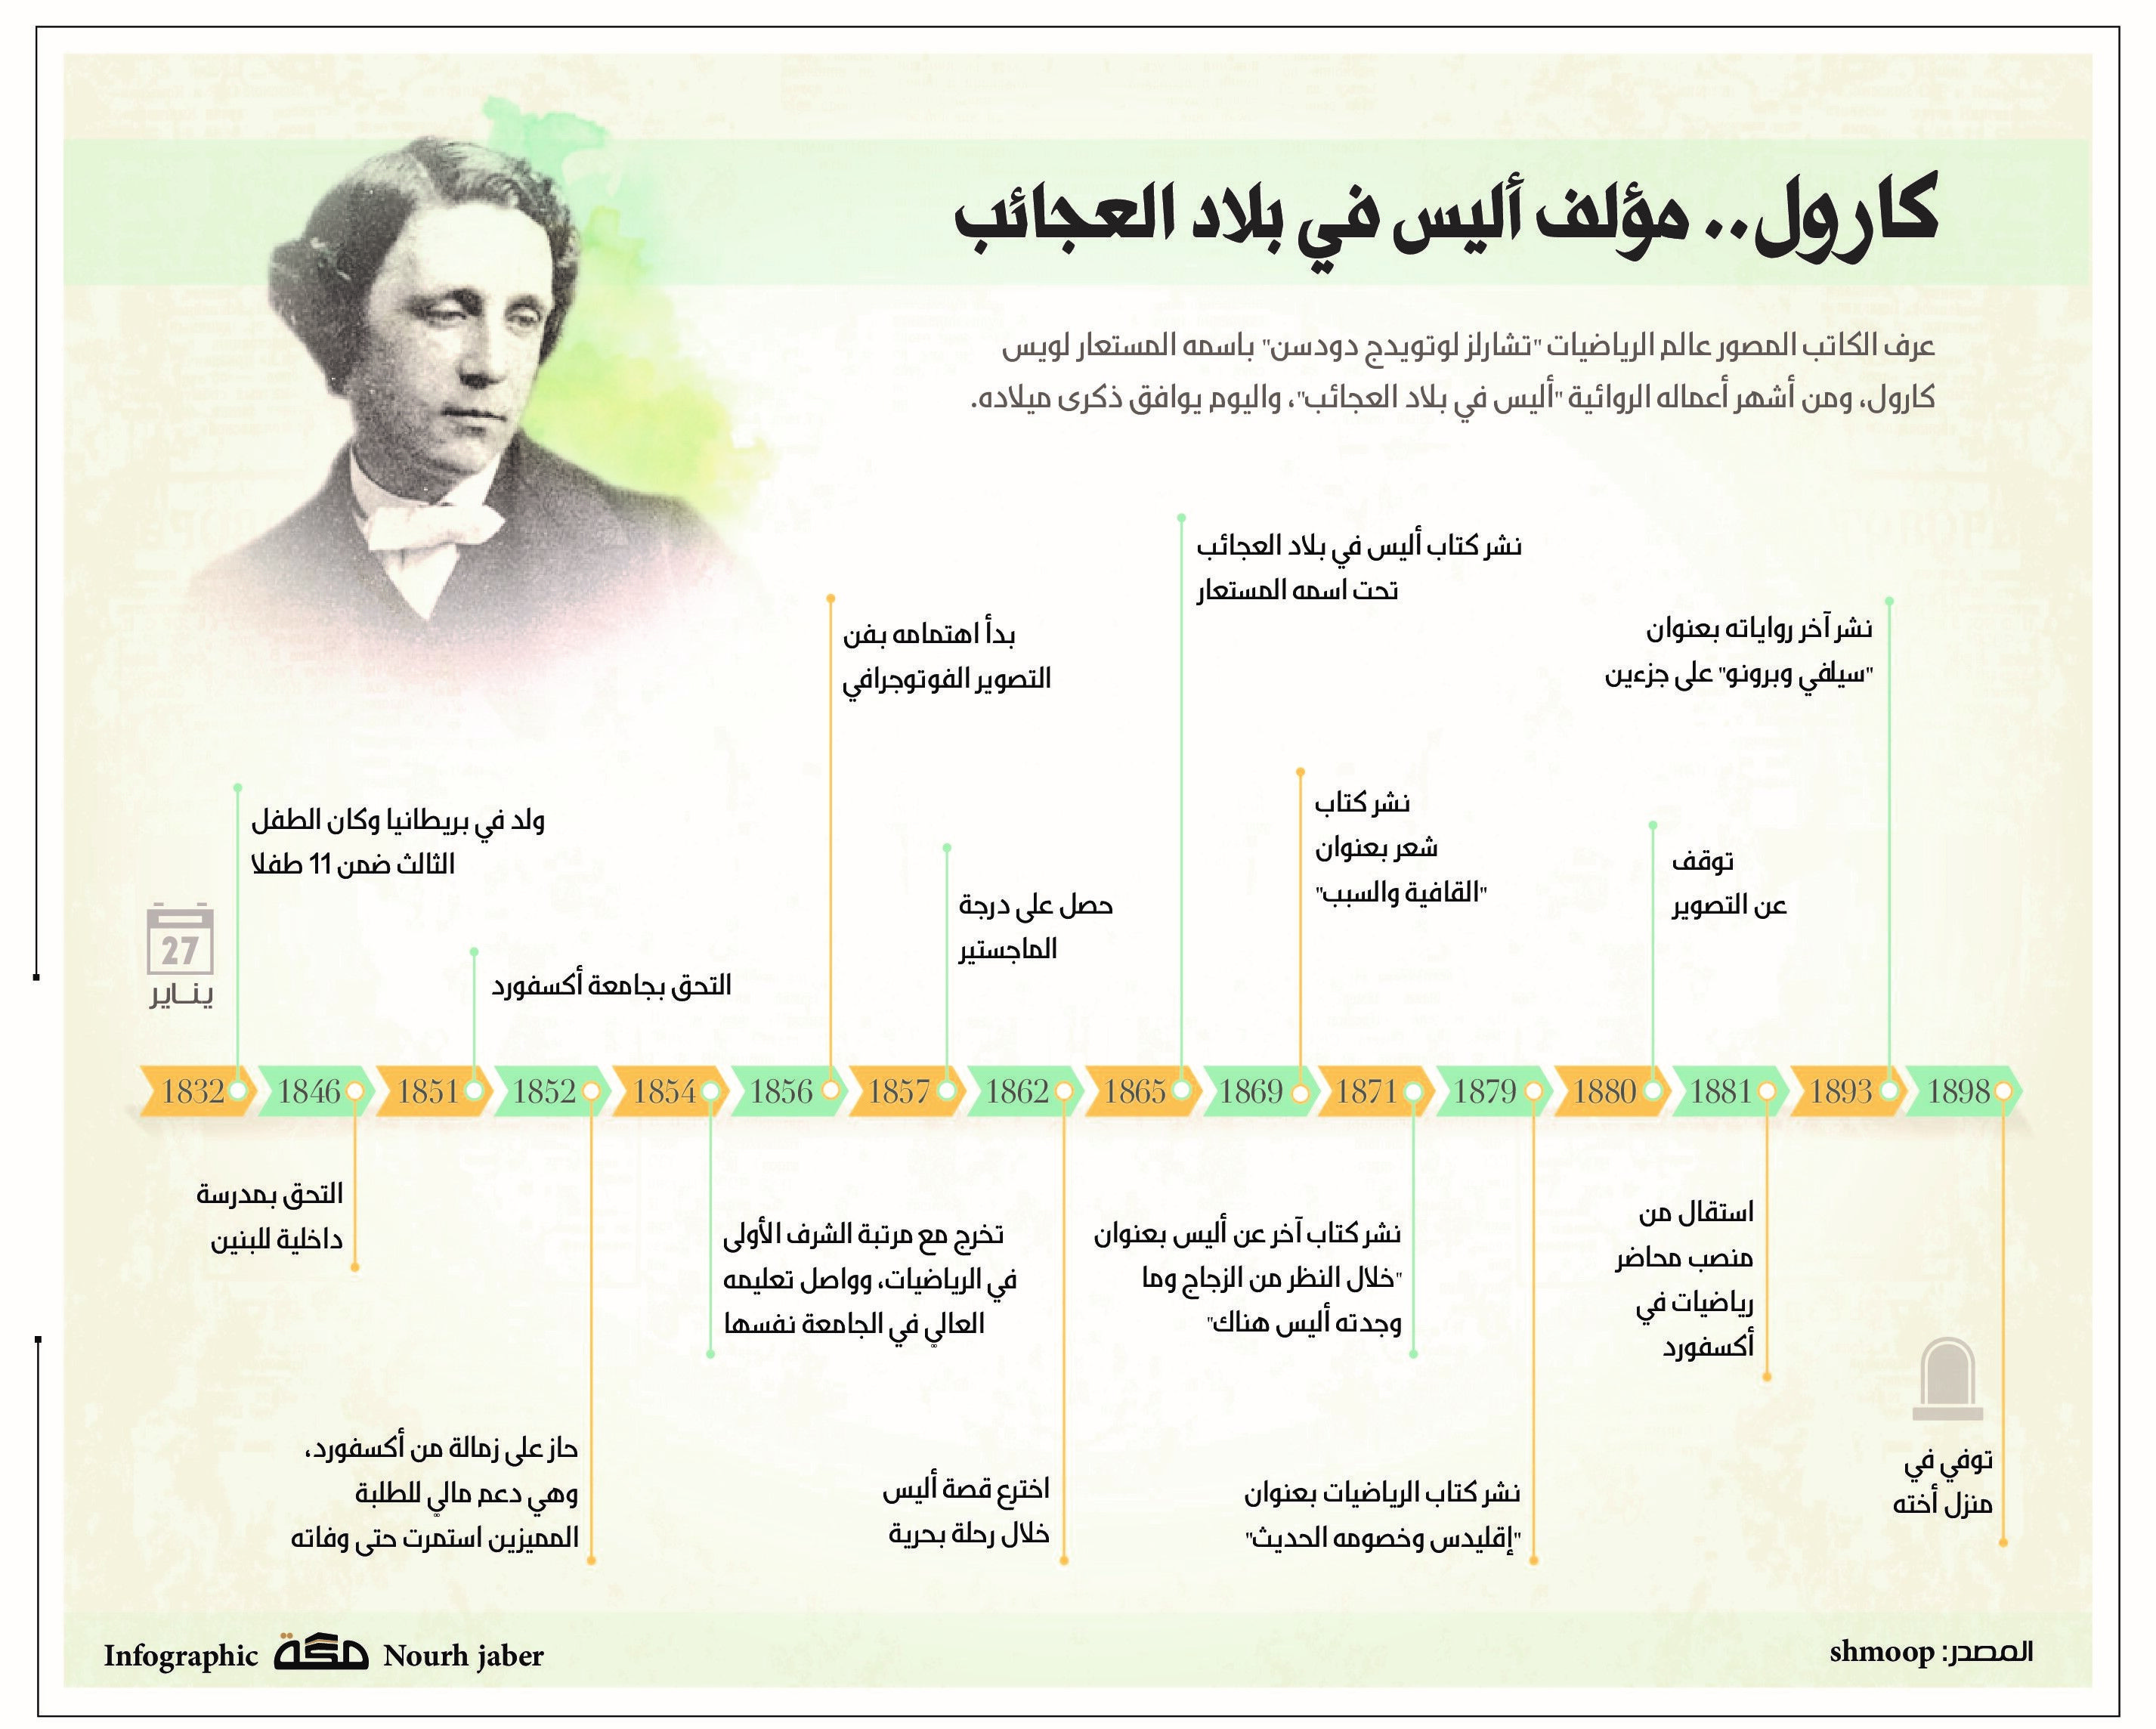 Pin By Newspaper On Infographic Makkahnp Infographic